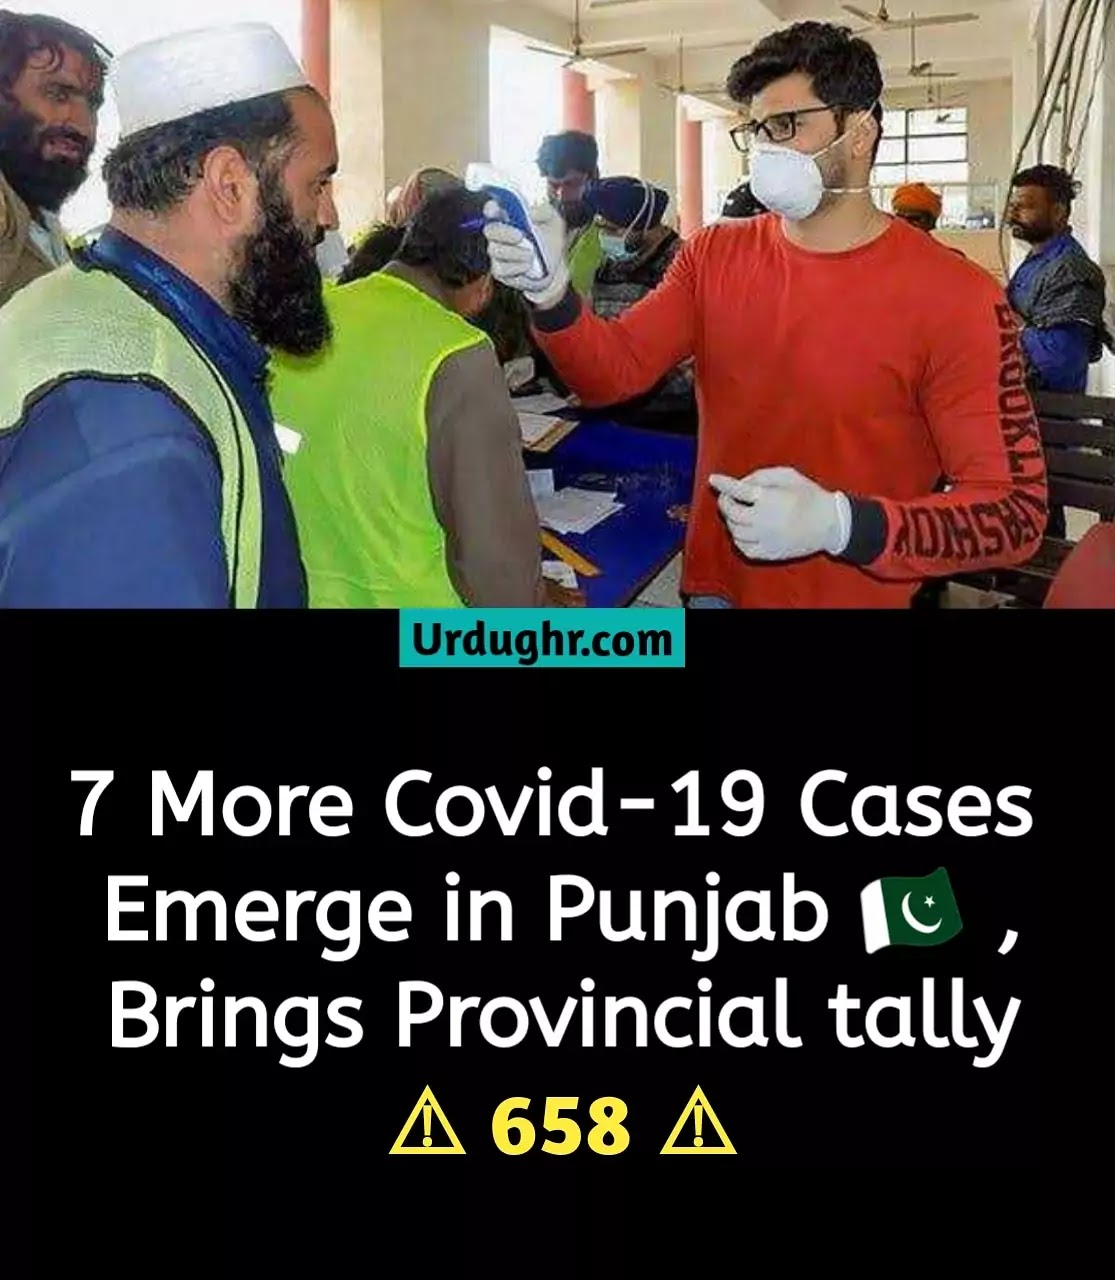 7 More CVOID-19 Cases Emerge in Punjab